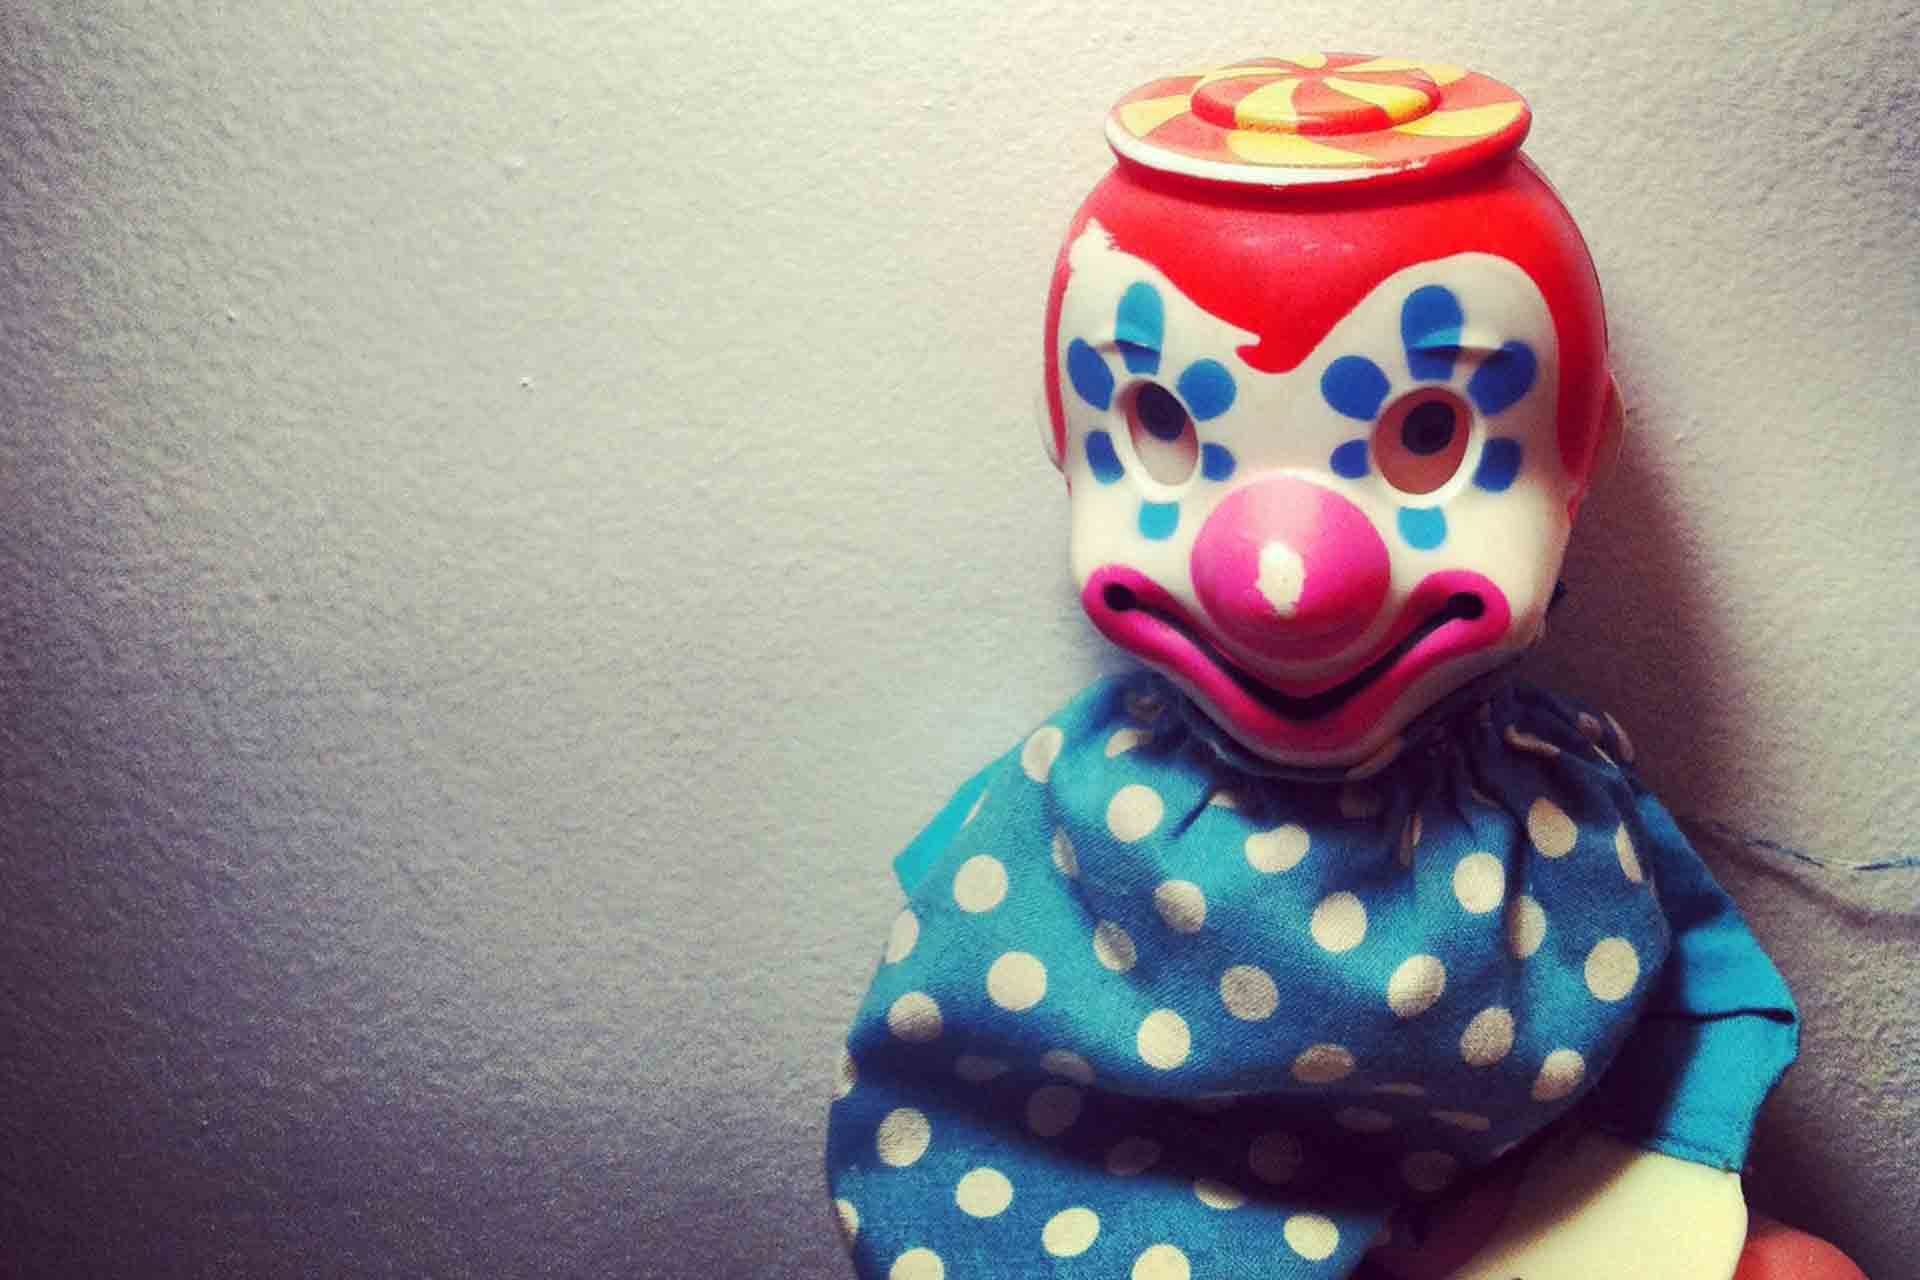 clown-fear-horror-3363